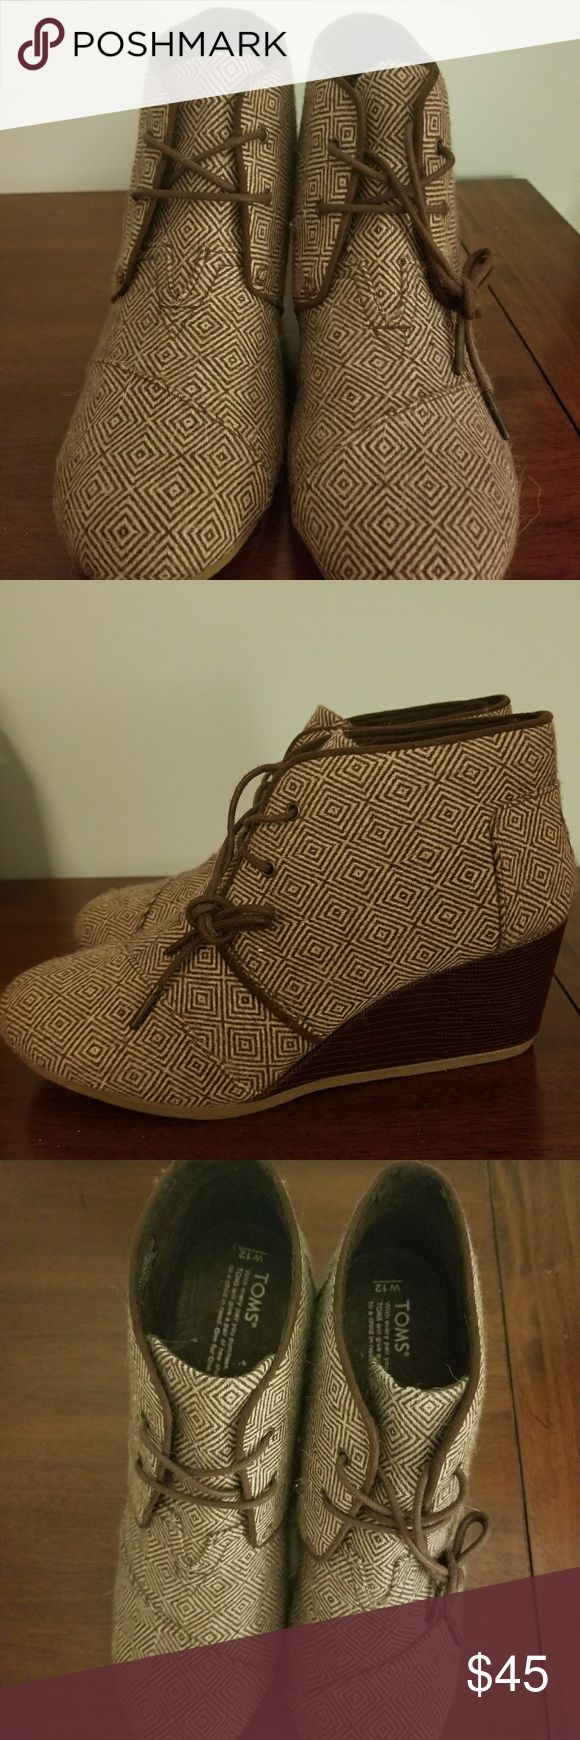 """Toms desert wedge booties, new never been worn DETAILS  Brown and cream diamond print. Womens size 12. NWOT.  The simplest way to add a dash of chic to your everyday   Laces with metal tips Antimicrobial sock liner Heel height: approximately 2 ?"""" TOMS Shoes Wedges"""